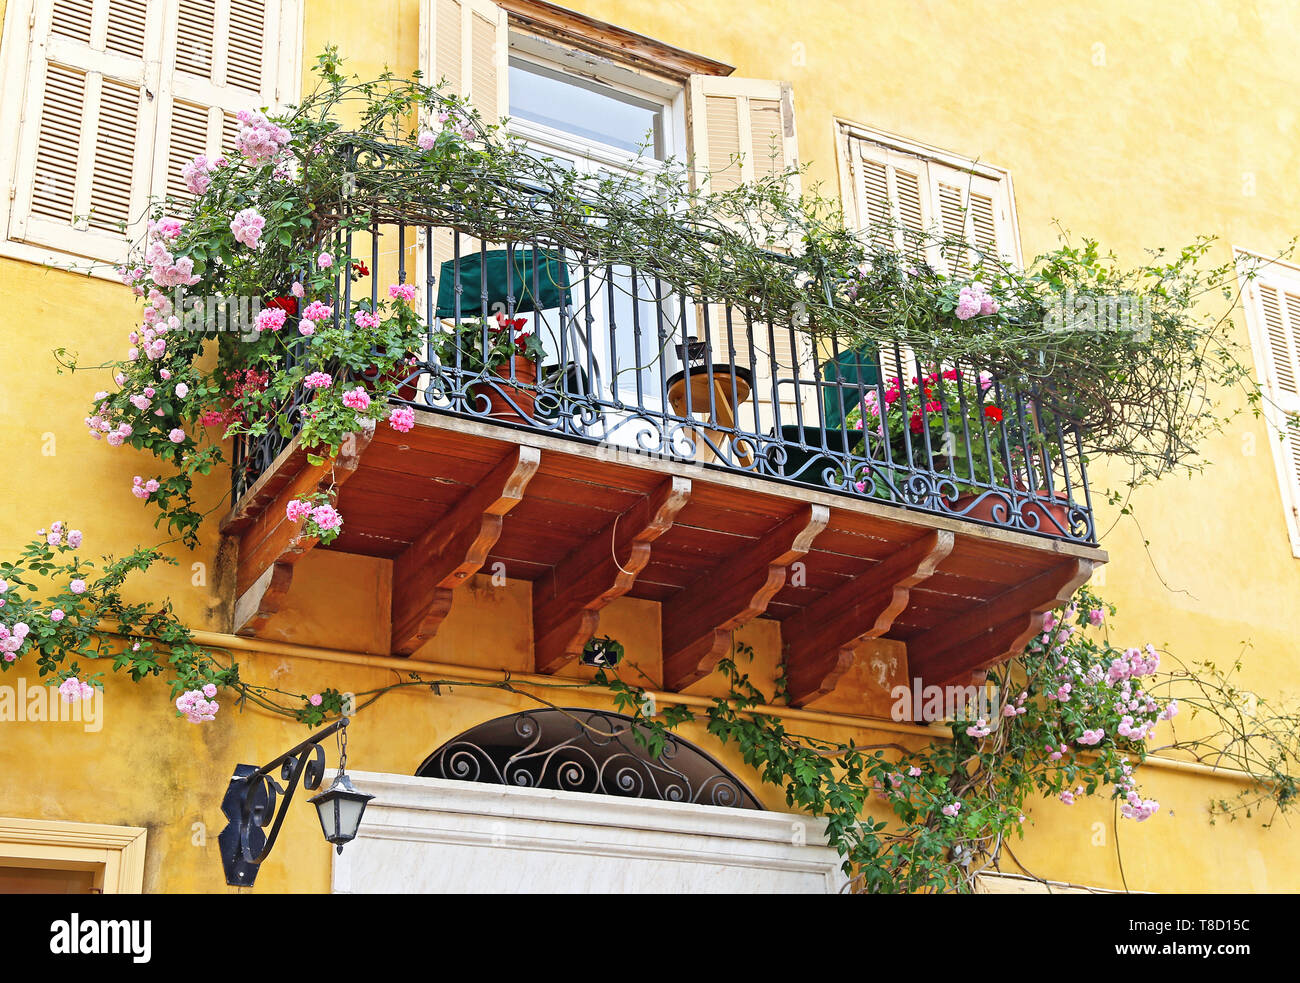 traditional balcony full of flowers in Nafplio Argolis Greece - Stock Image